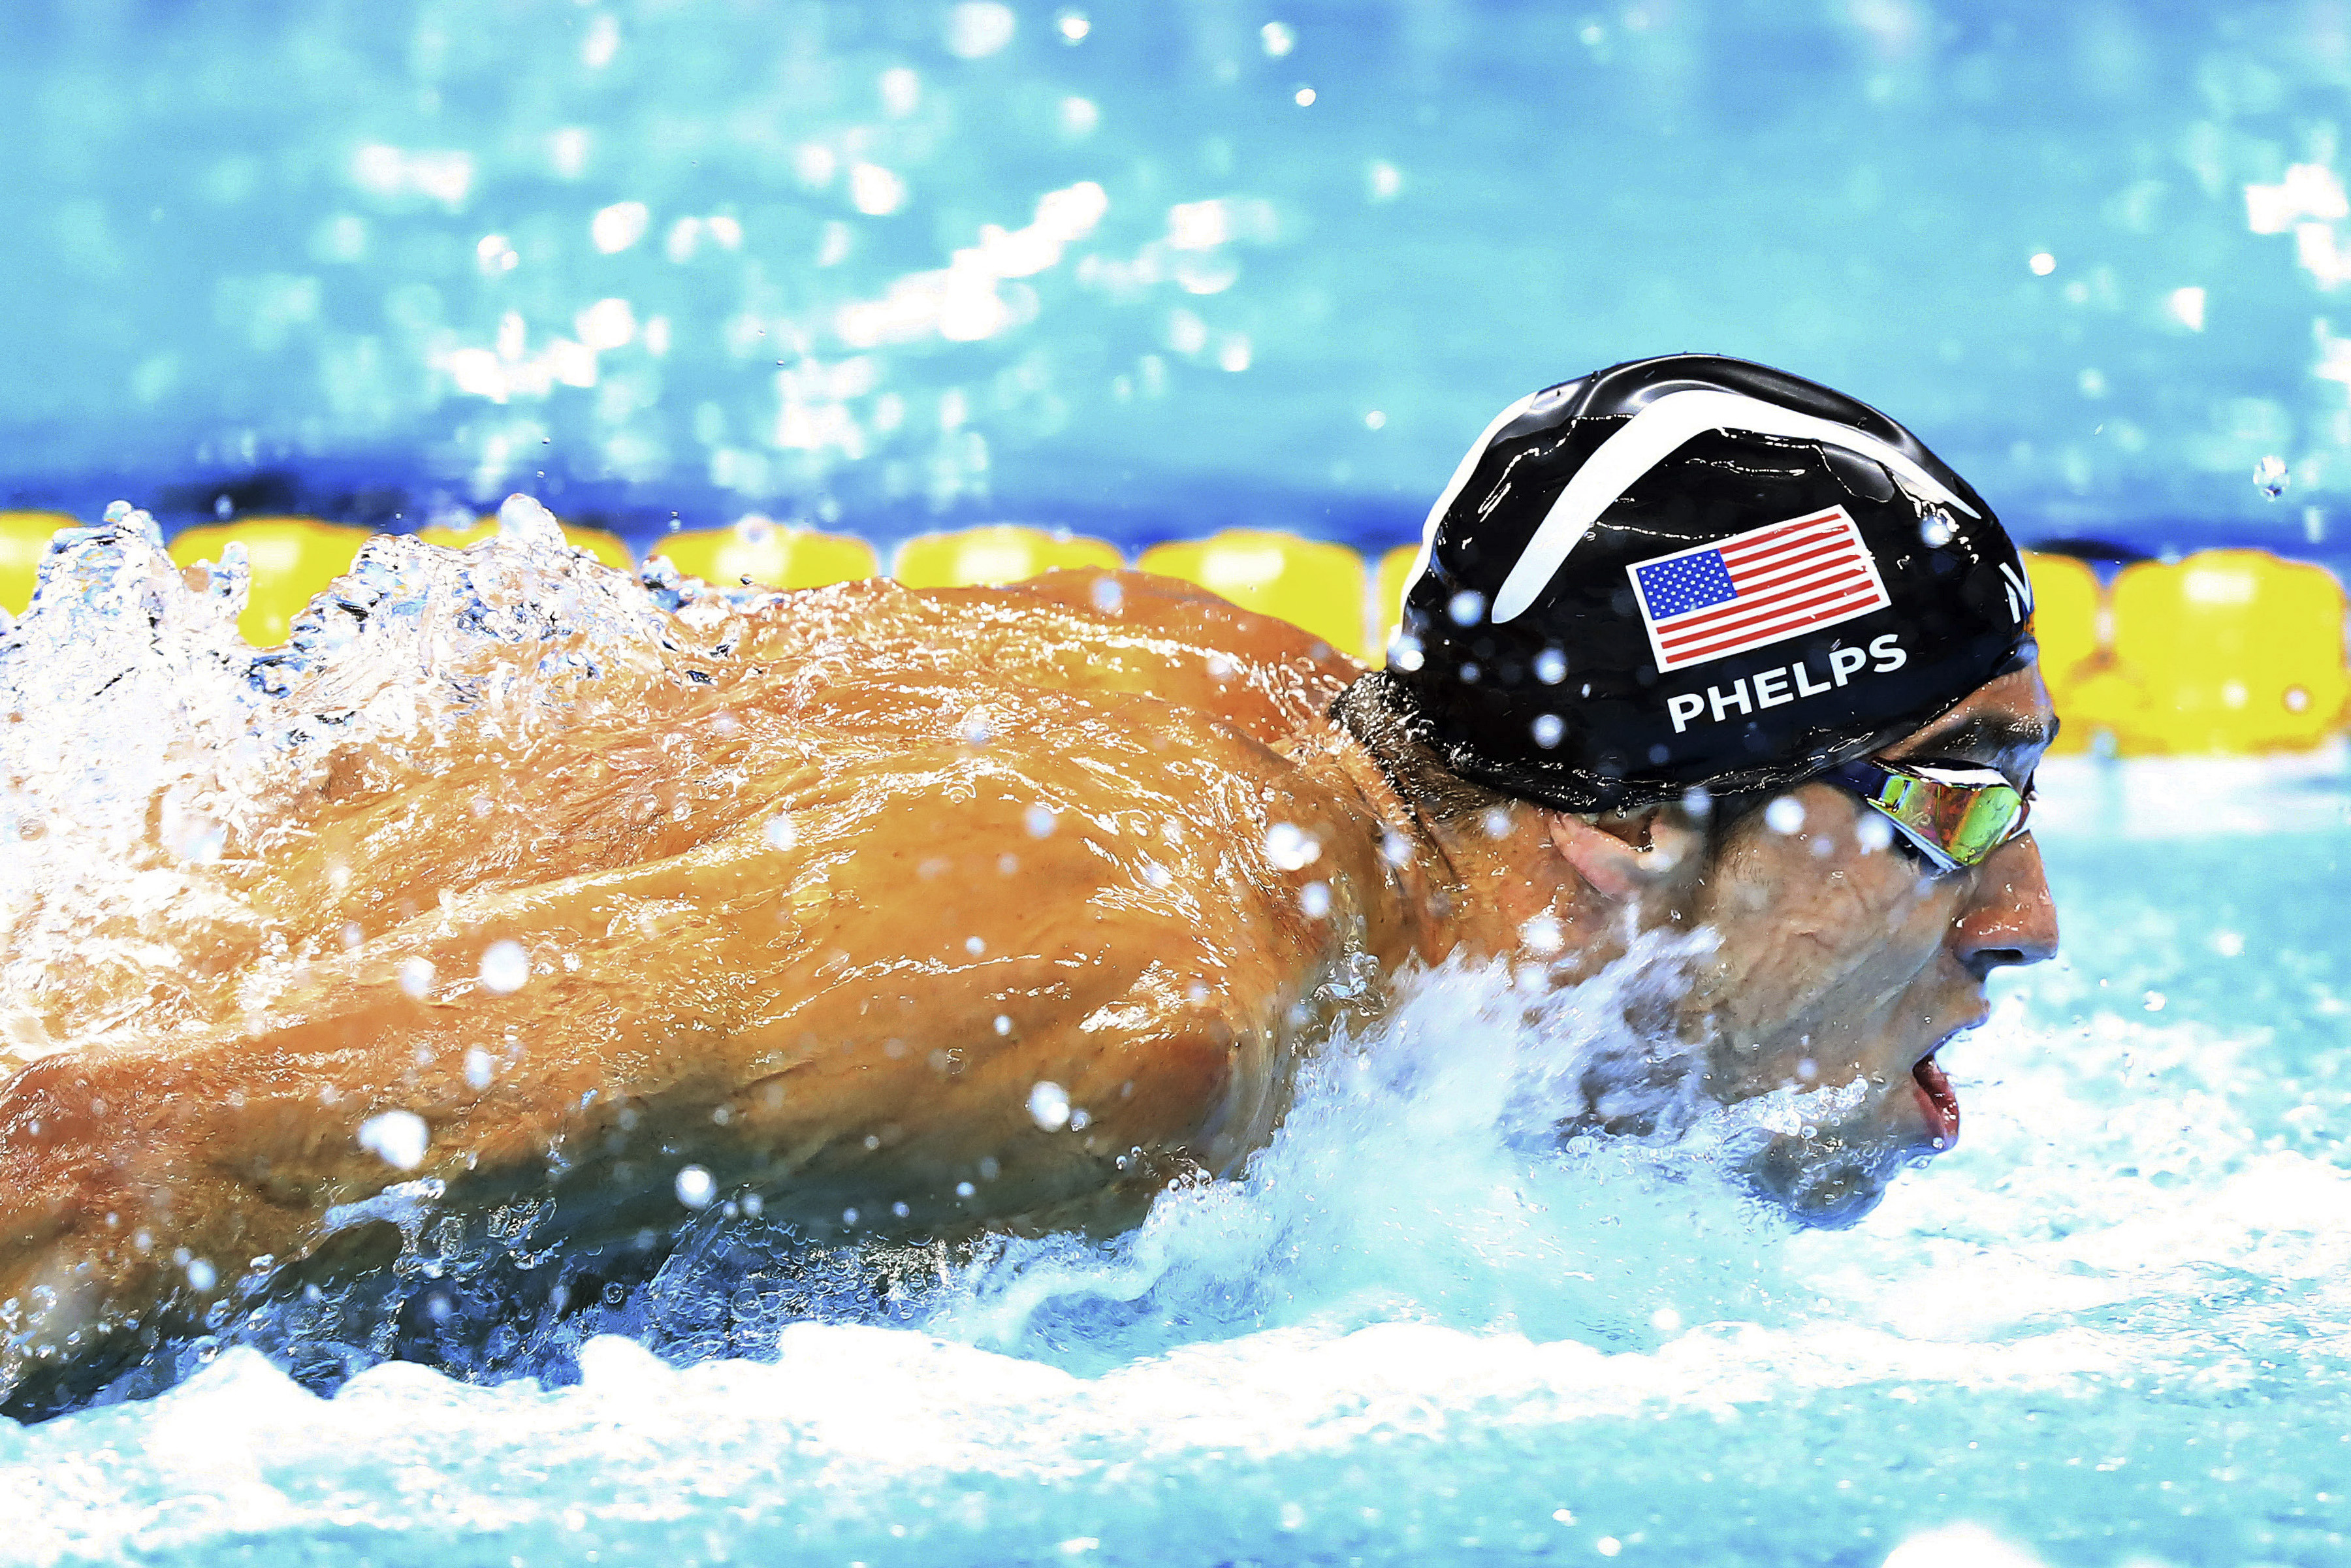 Michael Phelps of the U.S. competes in men's 4x100-meter medley relay final, likely the last race of his career, during the 2016 Summer Olympics at Olympic Aquatics Stadium in Rio de Janeiro. The U.S placed first in the event, earning Phelps his 23rd gold medal. (Chang W. Lee/The New York Times)